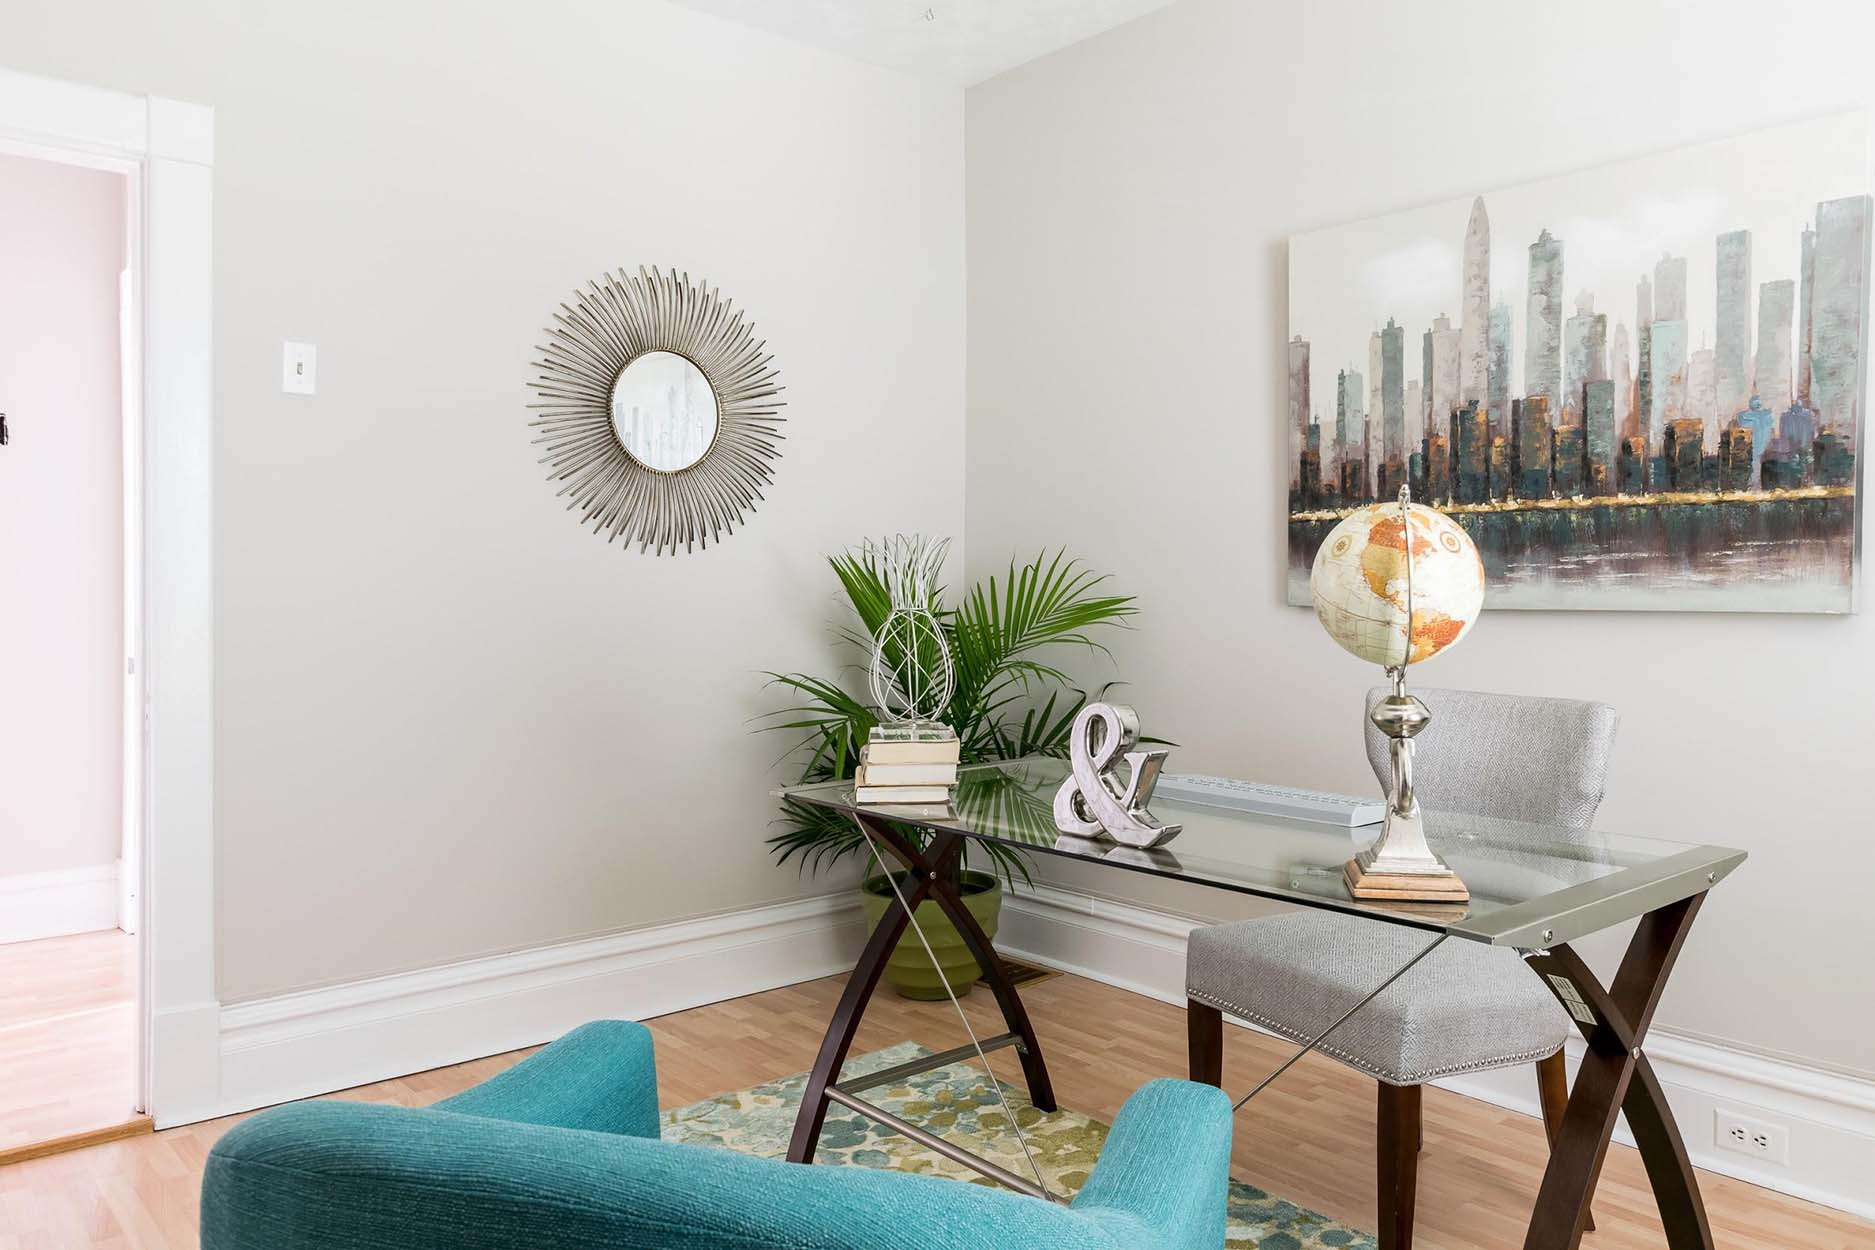 bedroom - staging your home to sell